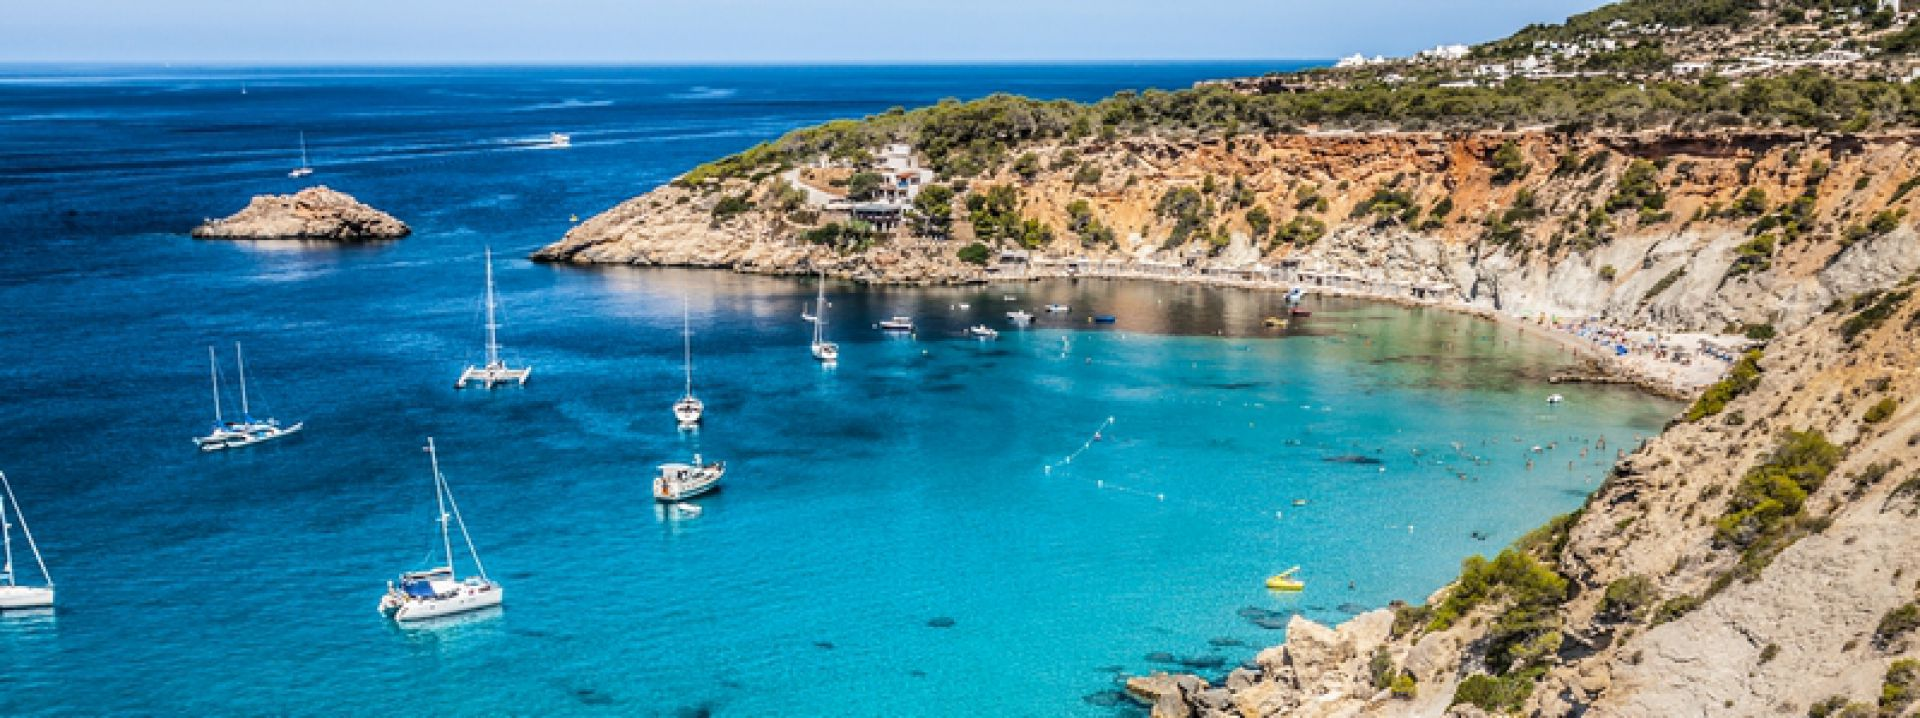 Where To Go On Beach Holiday In September